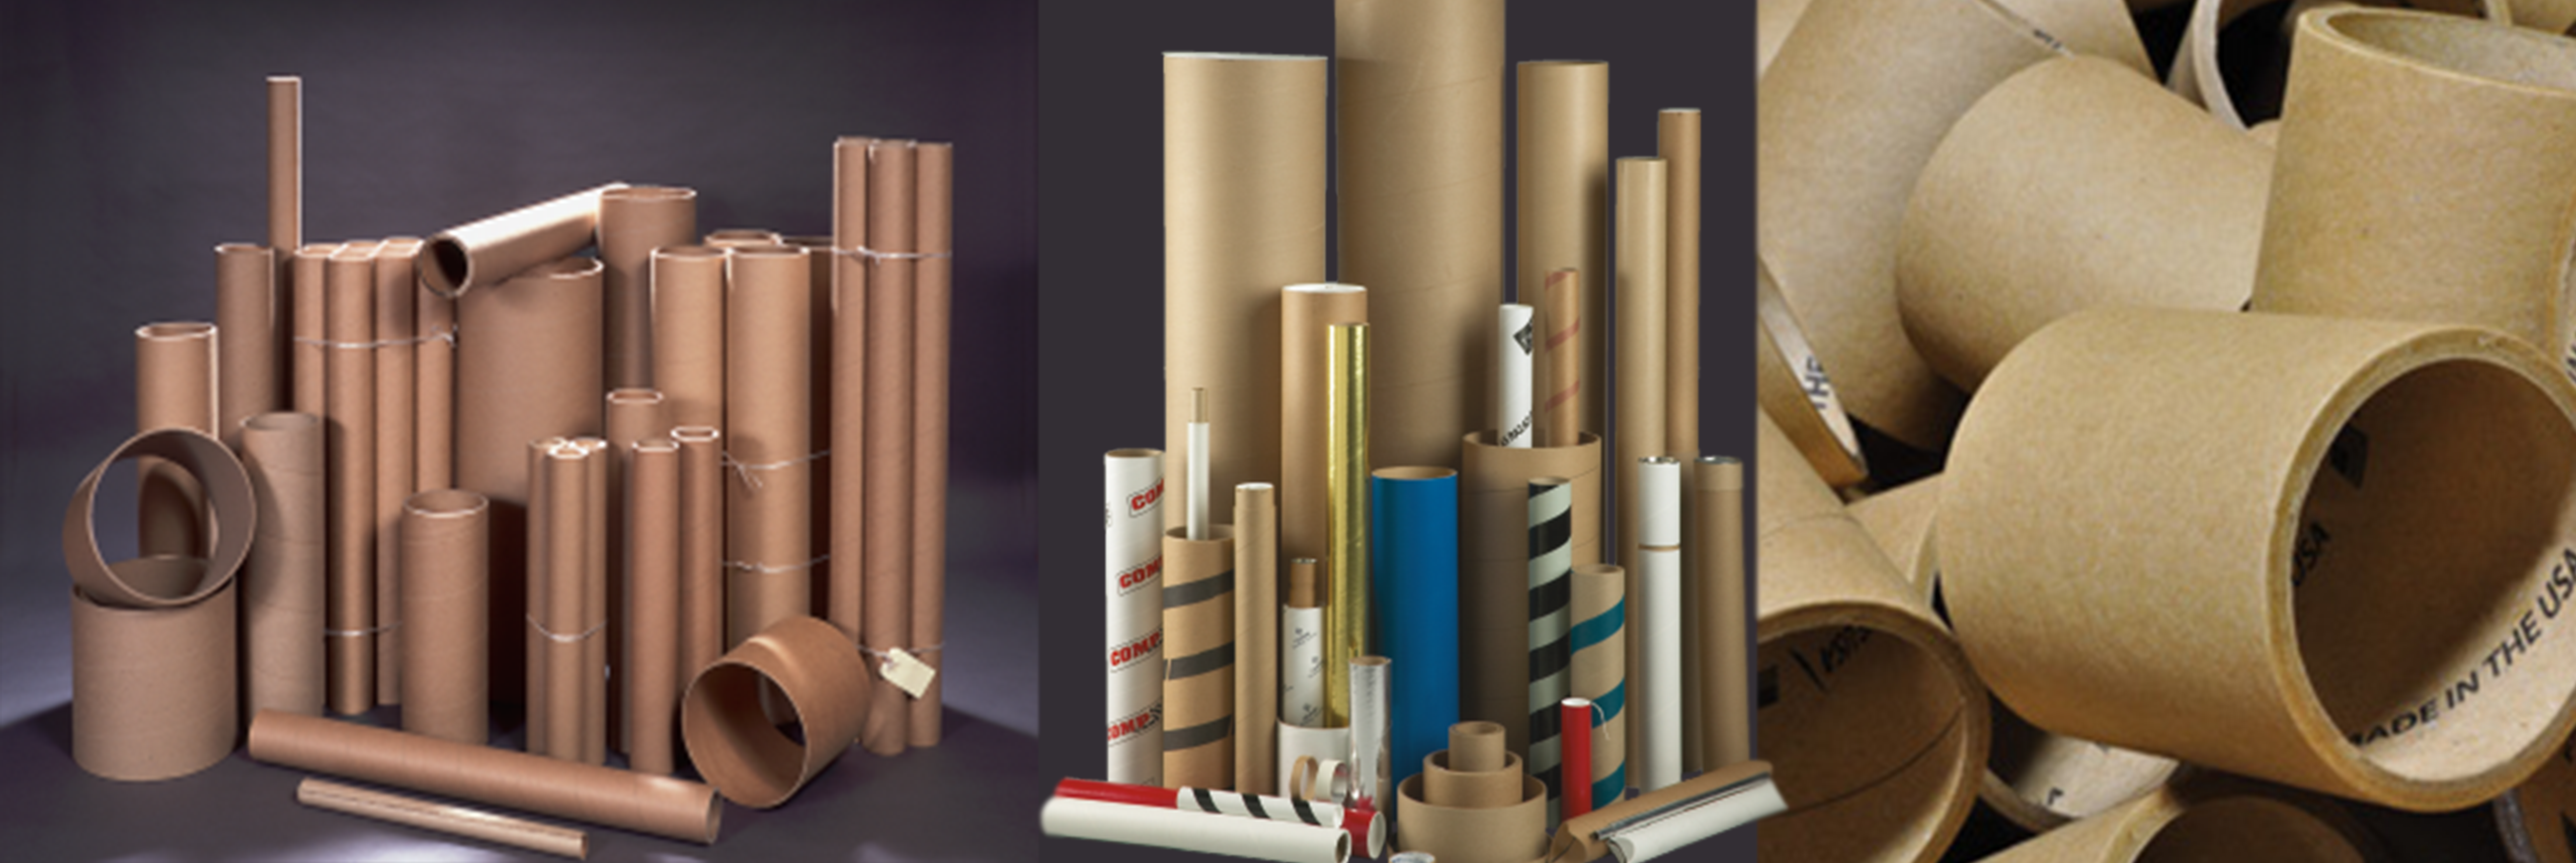 Uncategorized Cardboard Tubes For Concrete Forms paper tube manufacturing companies 7 of the best suppliers cardboard manufacturers